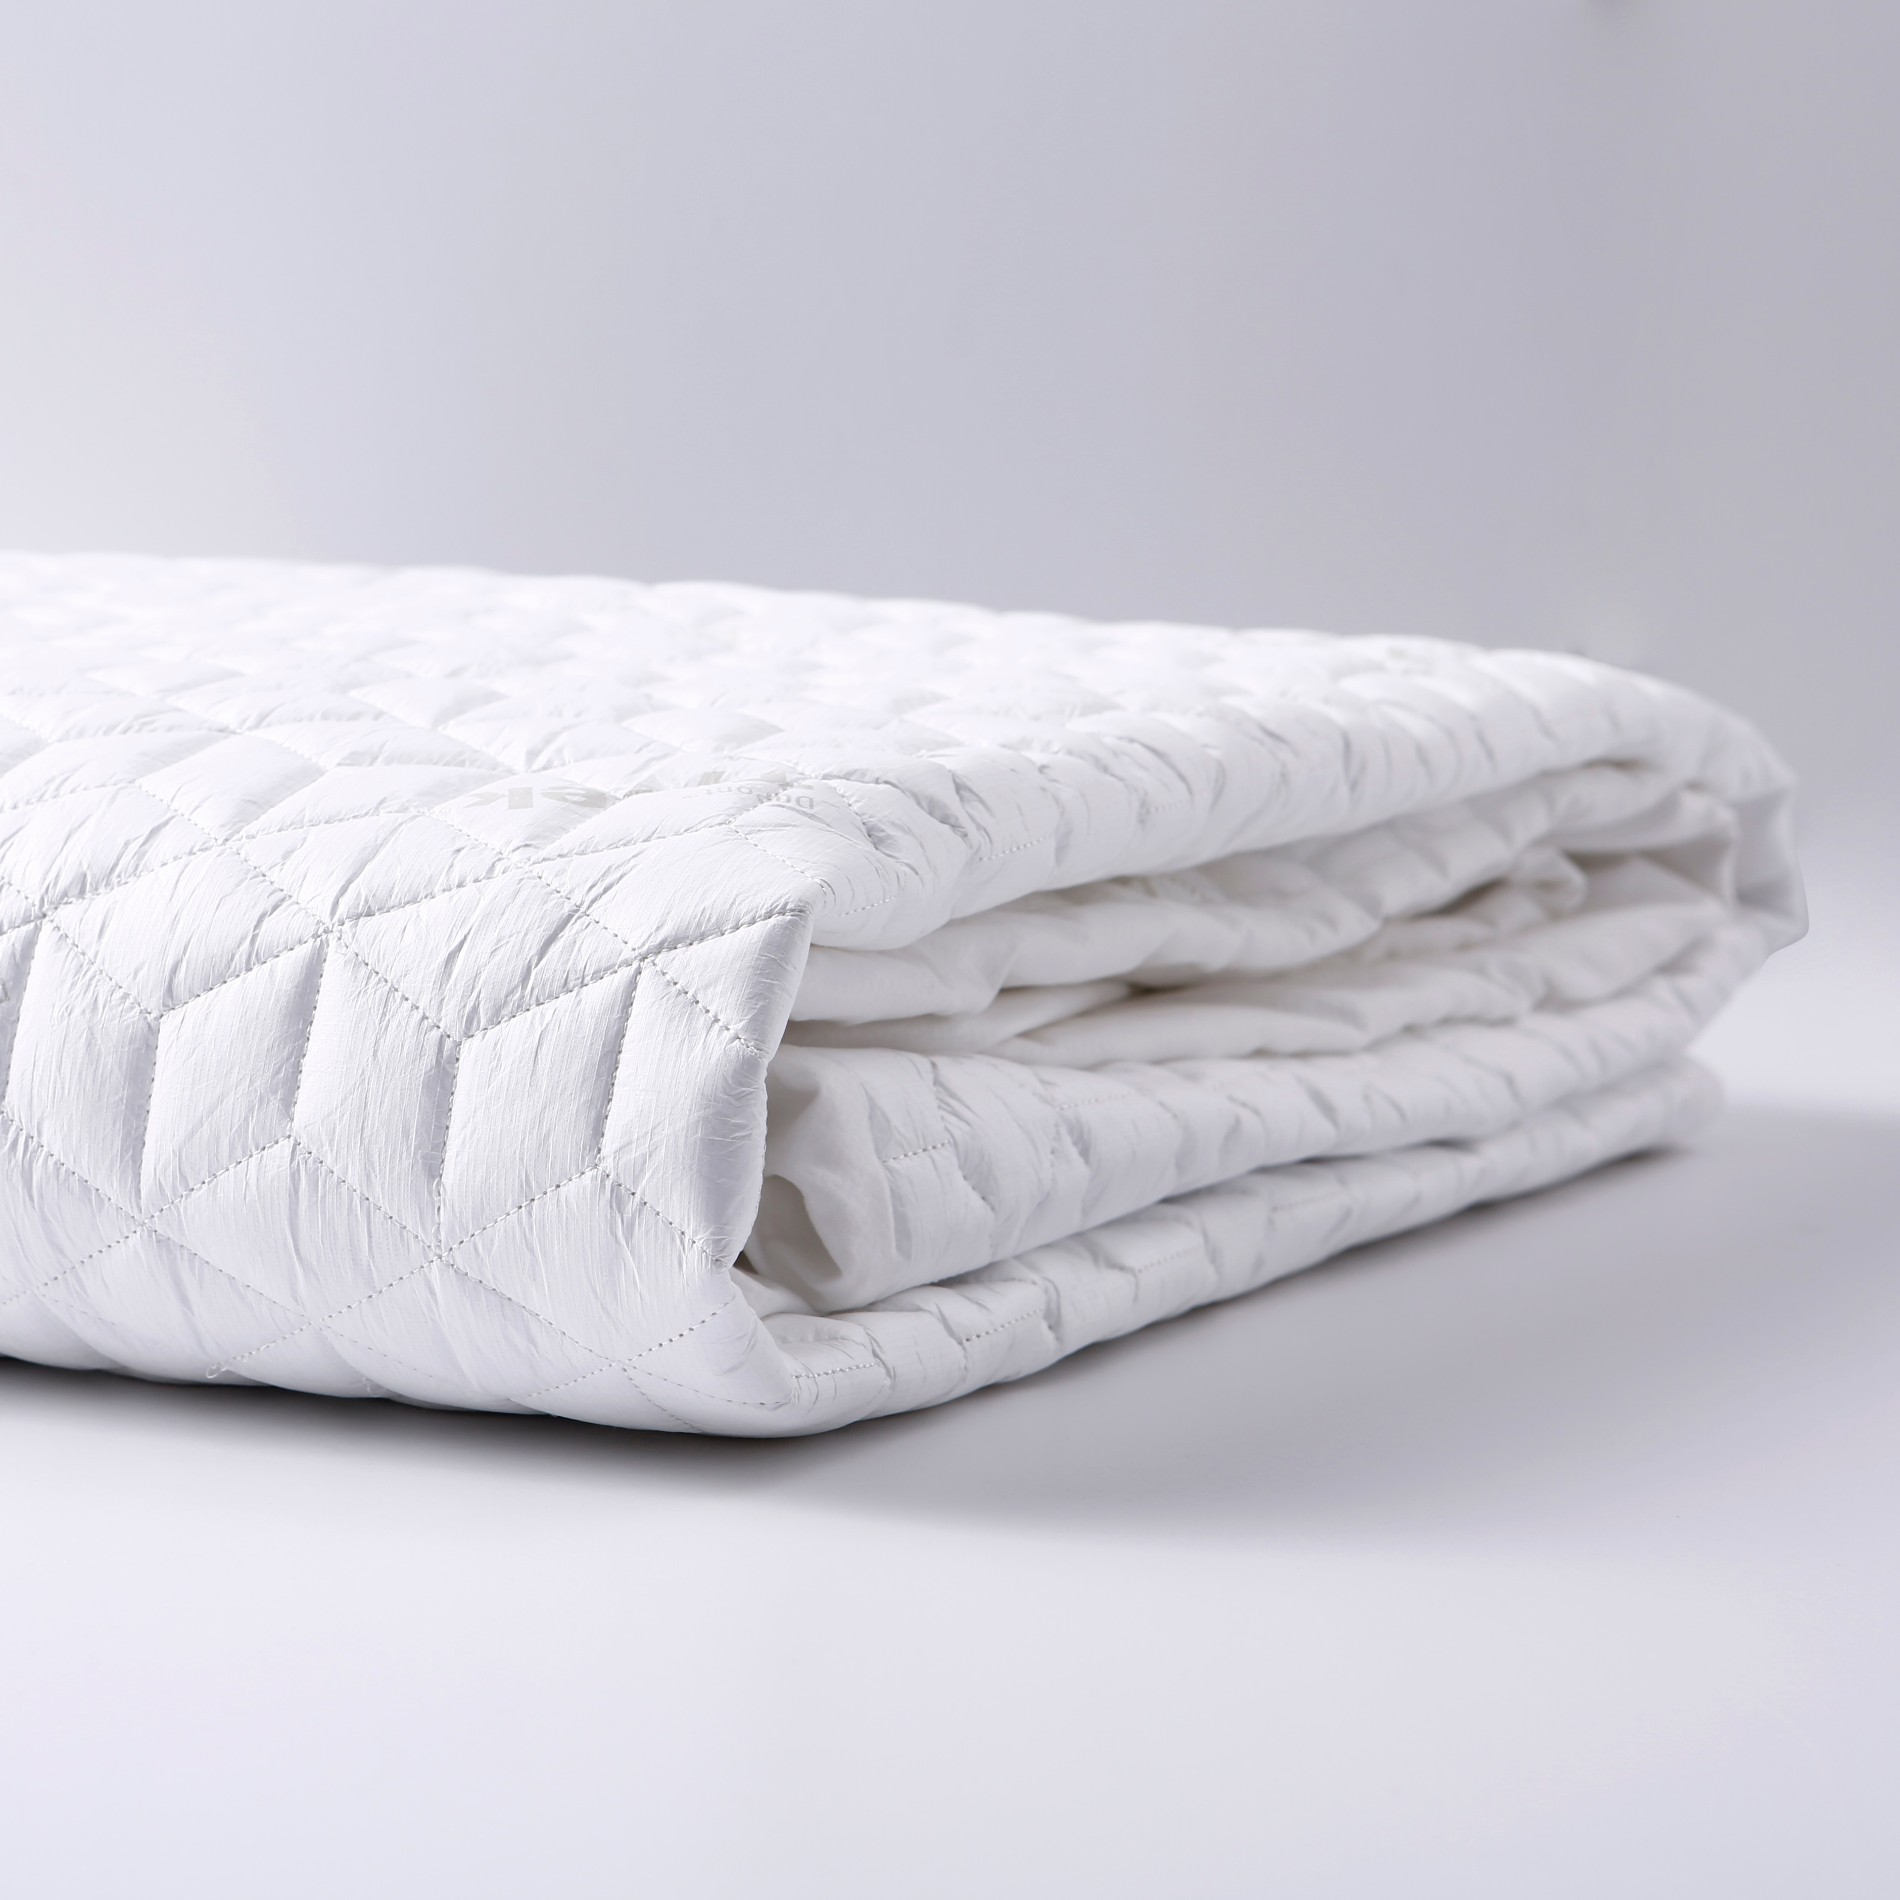 Anti Allergy Mattress Protector Manufacturers, Anti Allergy Mattress Protector Factory, Supply Anti Allergy Mattress Protector